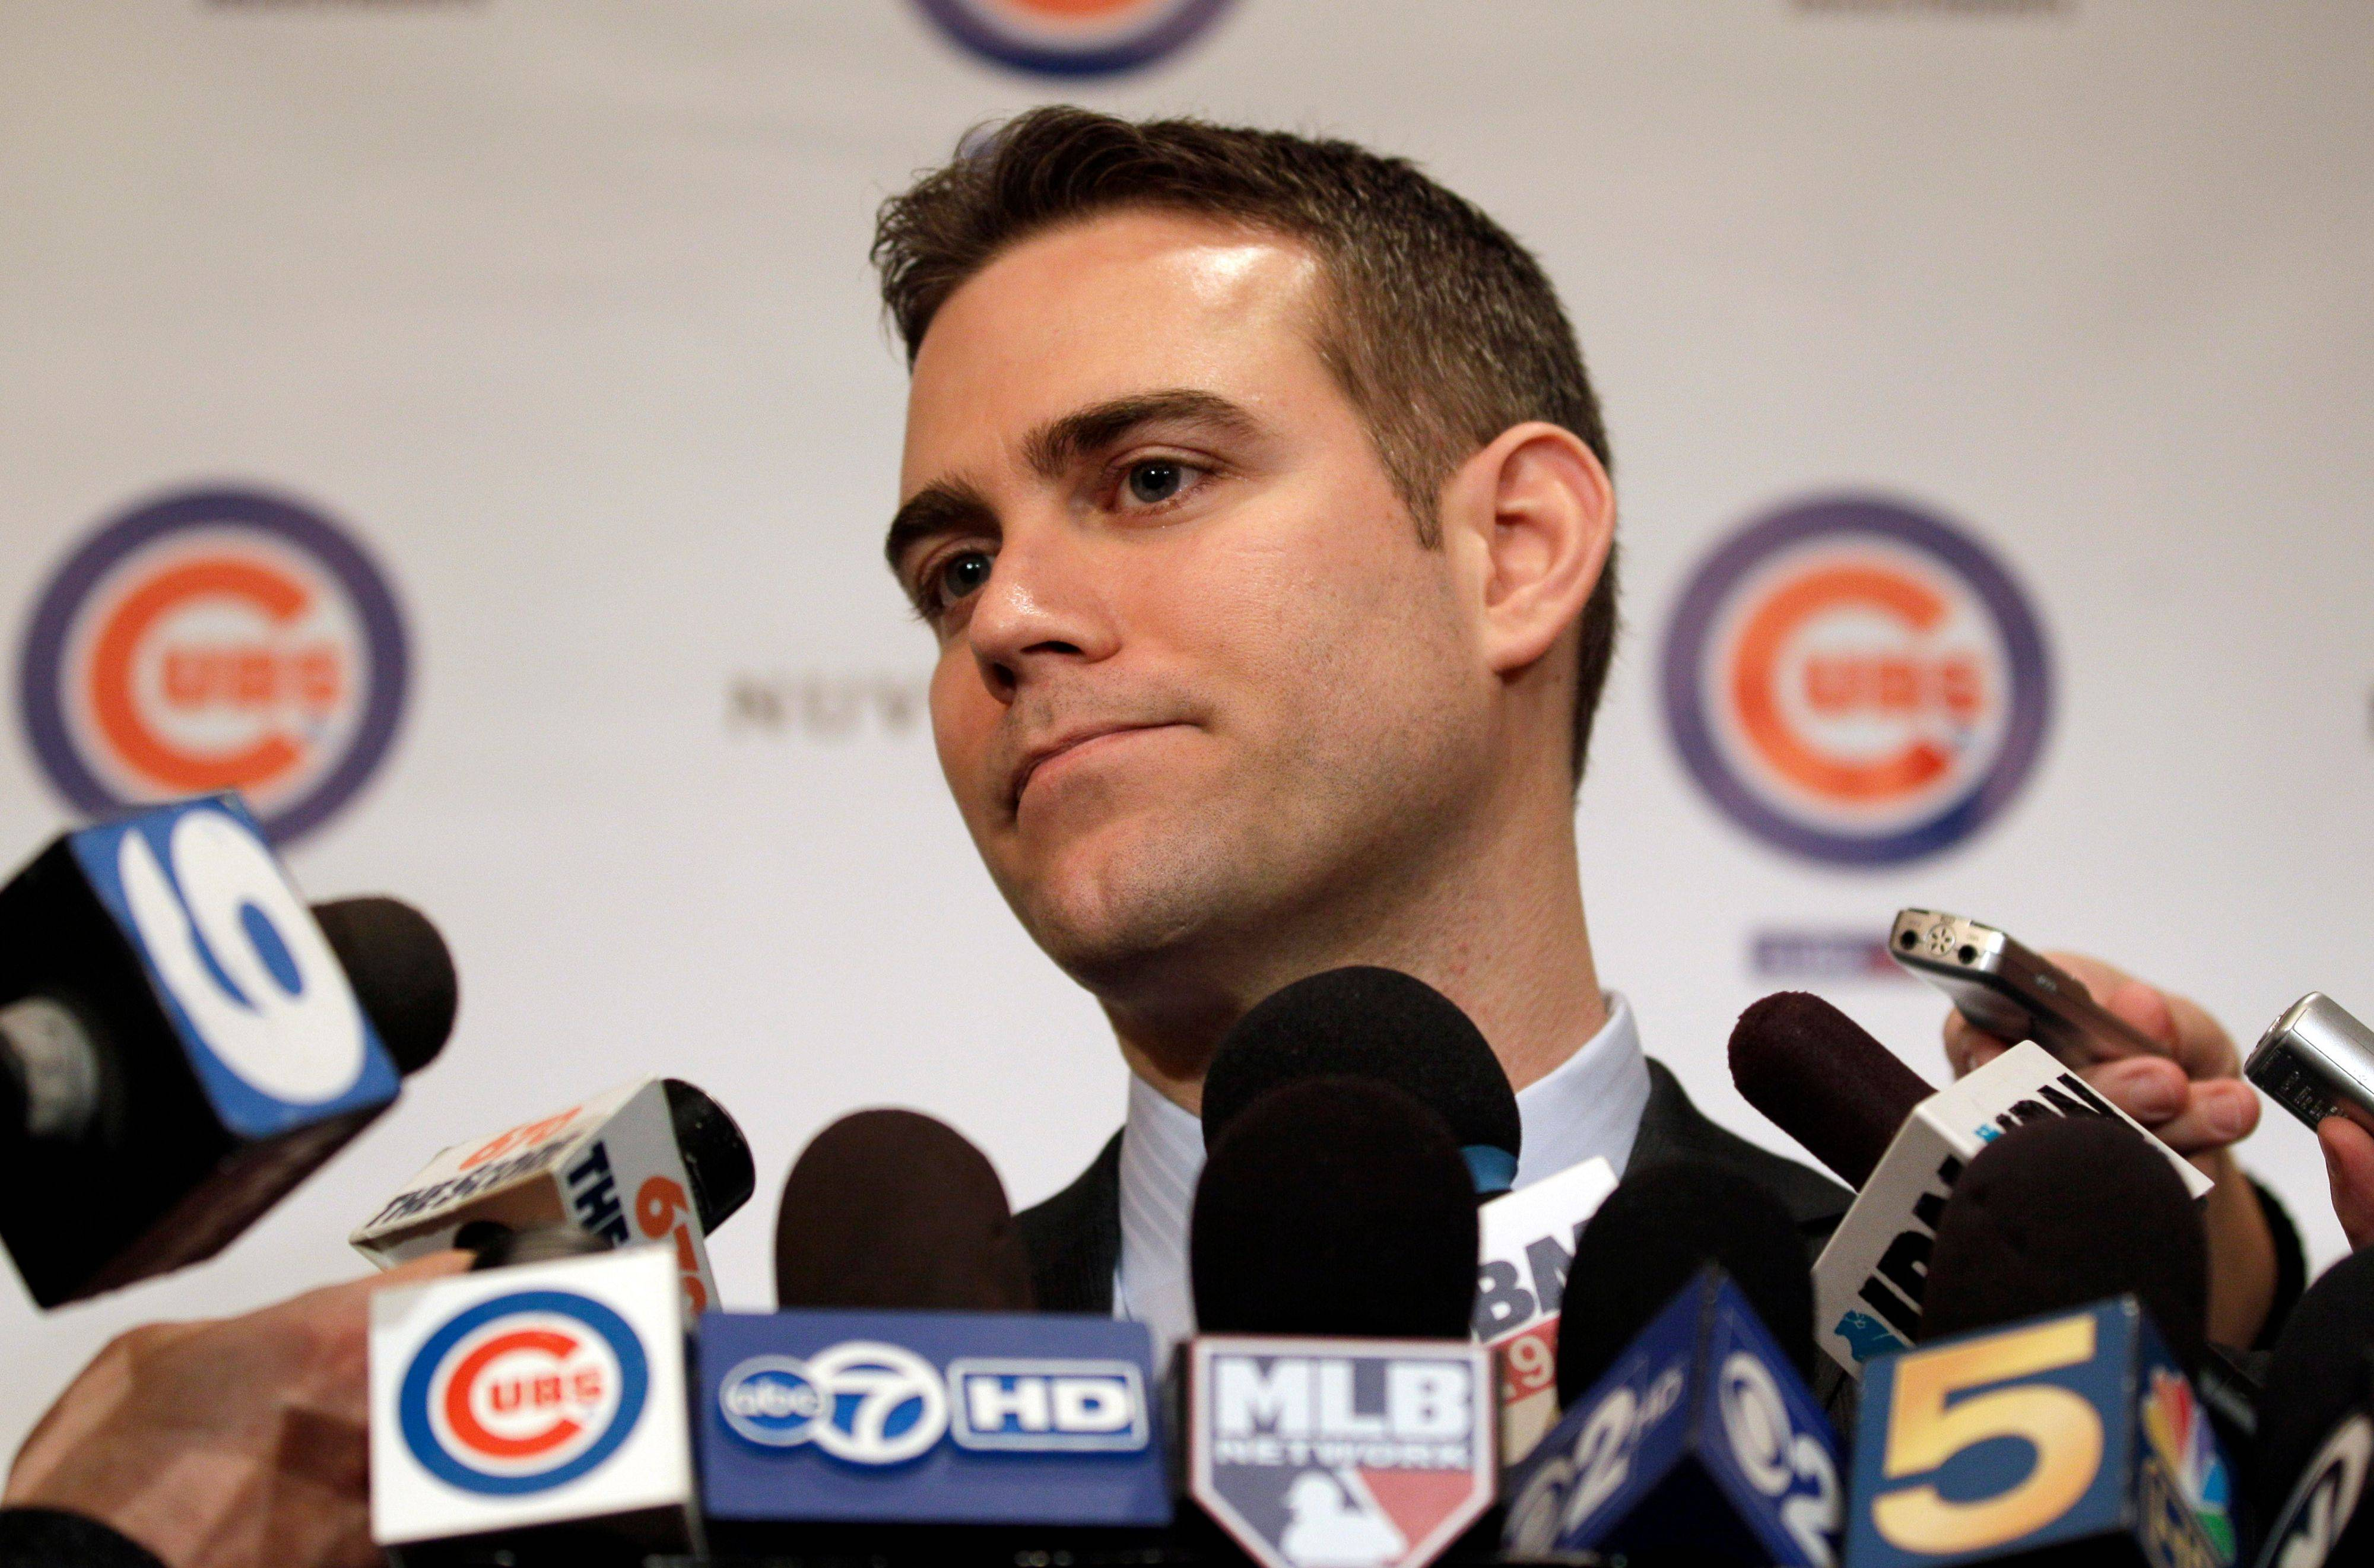 Theo Epstein speaks to reporters during the 27th annual Cubs baseball convention in Chicago on Friday, Jan. 13, 2012.